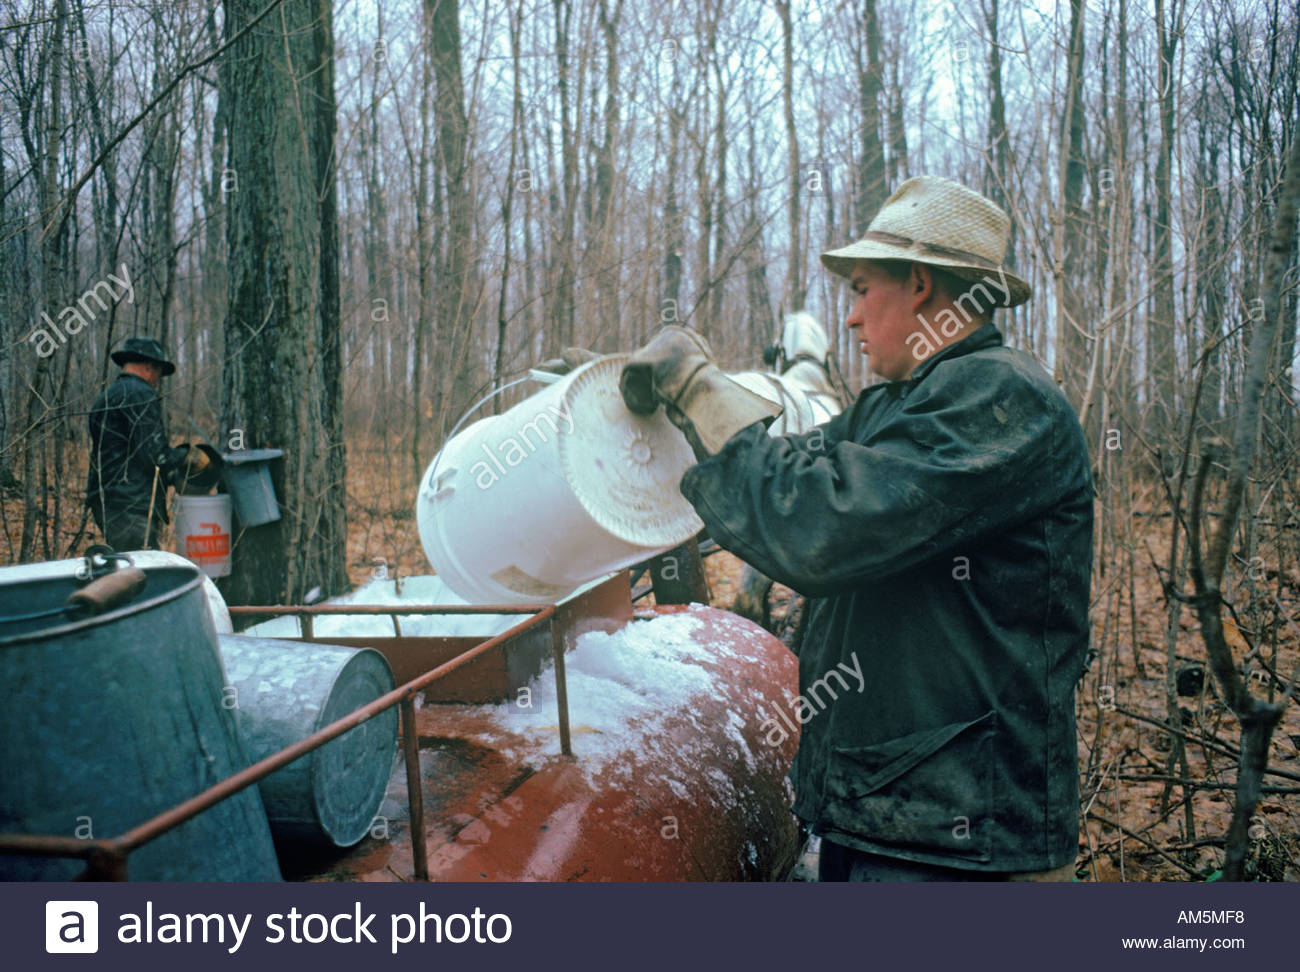 Collecting Maple sap by the old method for Maple syrup near Elmira Ontario Canada - Stock Image